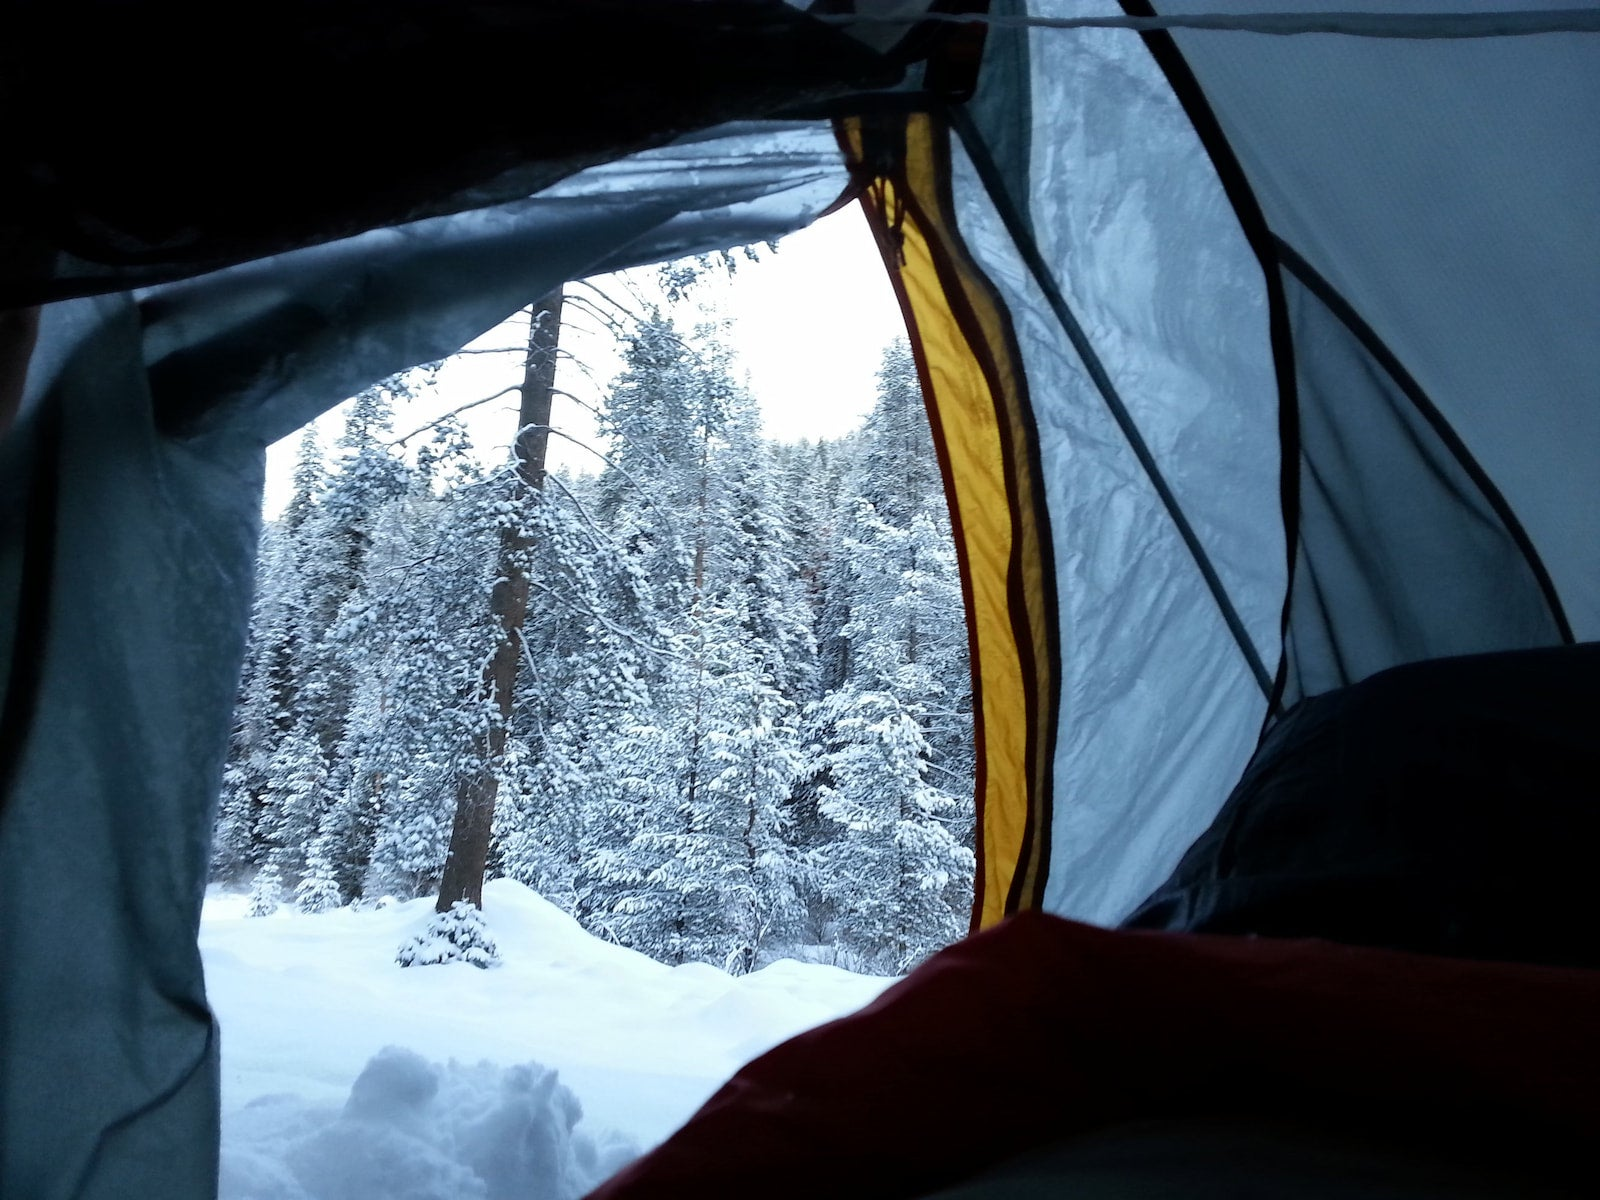 Snow covered landscape out the door of a tent.